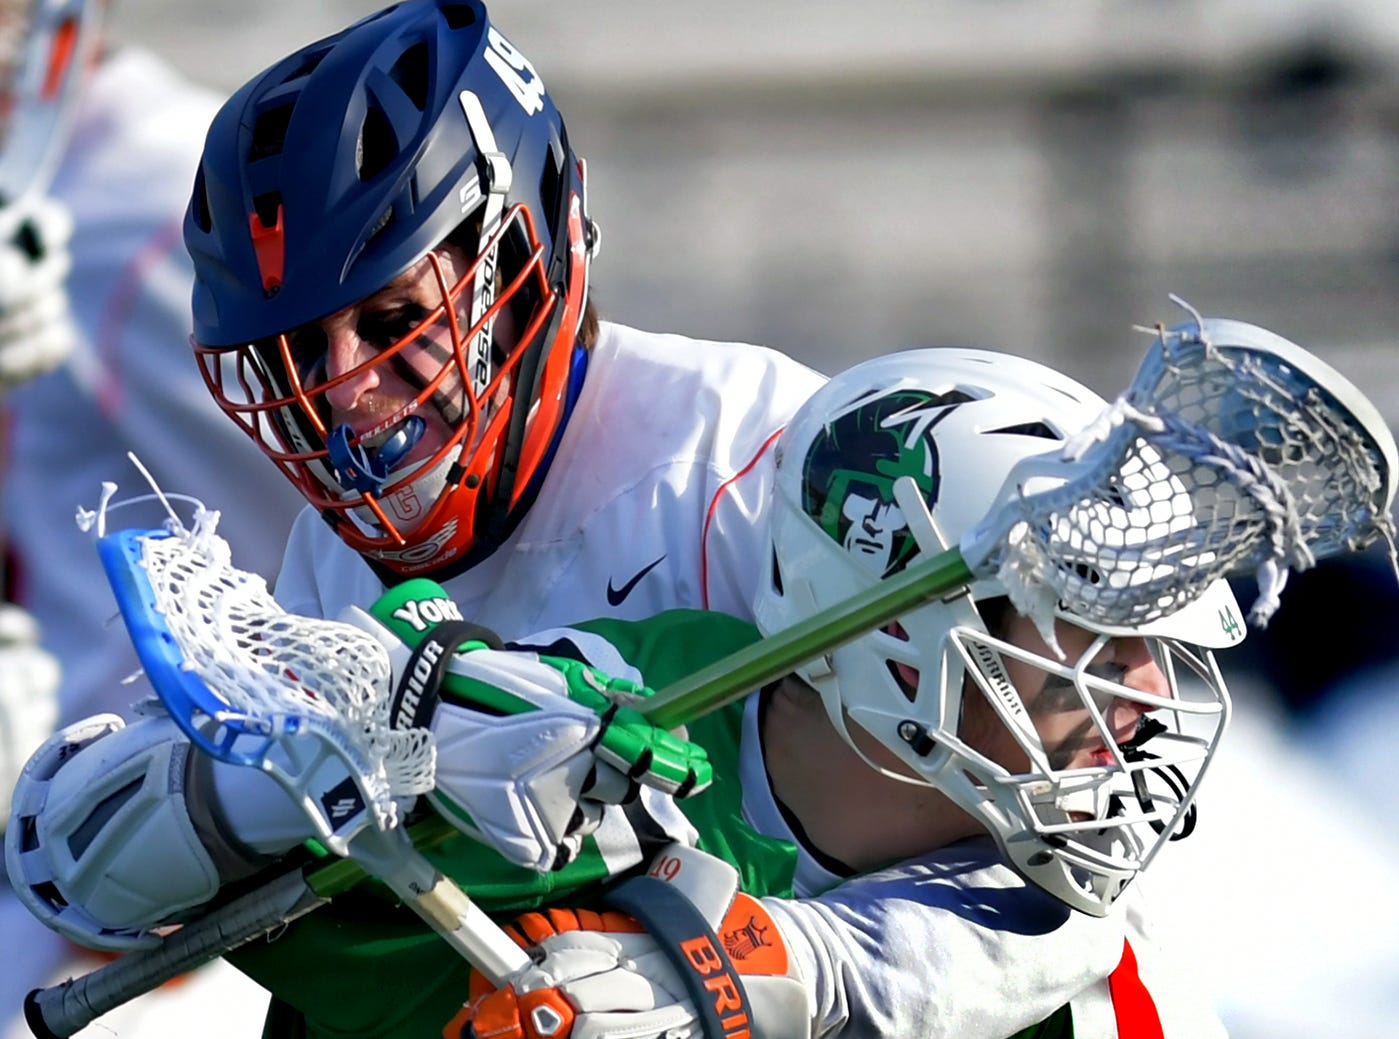 York College's Eric Ranck is pressured by Gettysburg College's Jackson Mumford during lacrosse action at Gettysburg Wednesday, March 6, 2019. Both teams went into the game ranked in the top 10 nationally in NCAA Division III men's lacrosse. York won 14-6. Bill Kalina photo